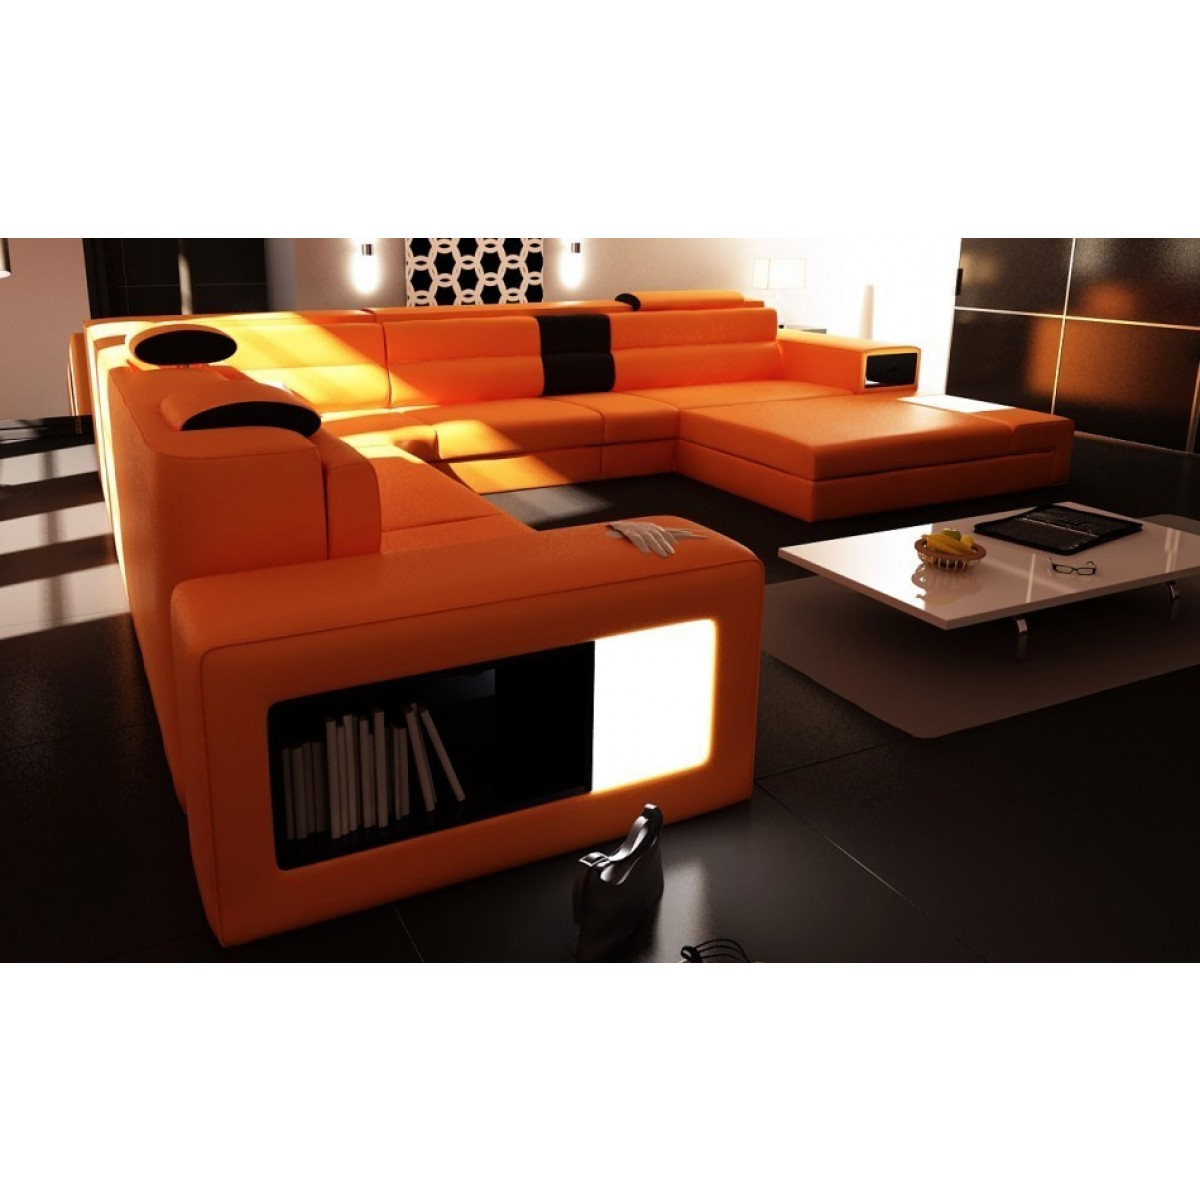 Contemporary Luxury Furniture Living Room Bedroom La Furniture Store In Usa Modern Sectional